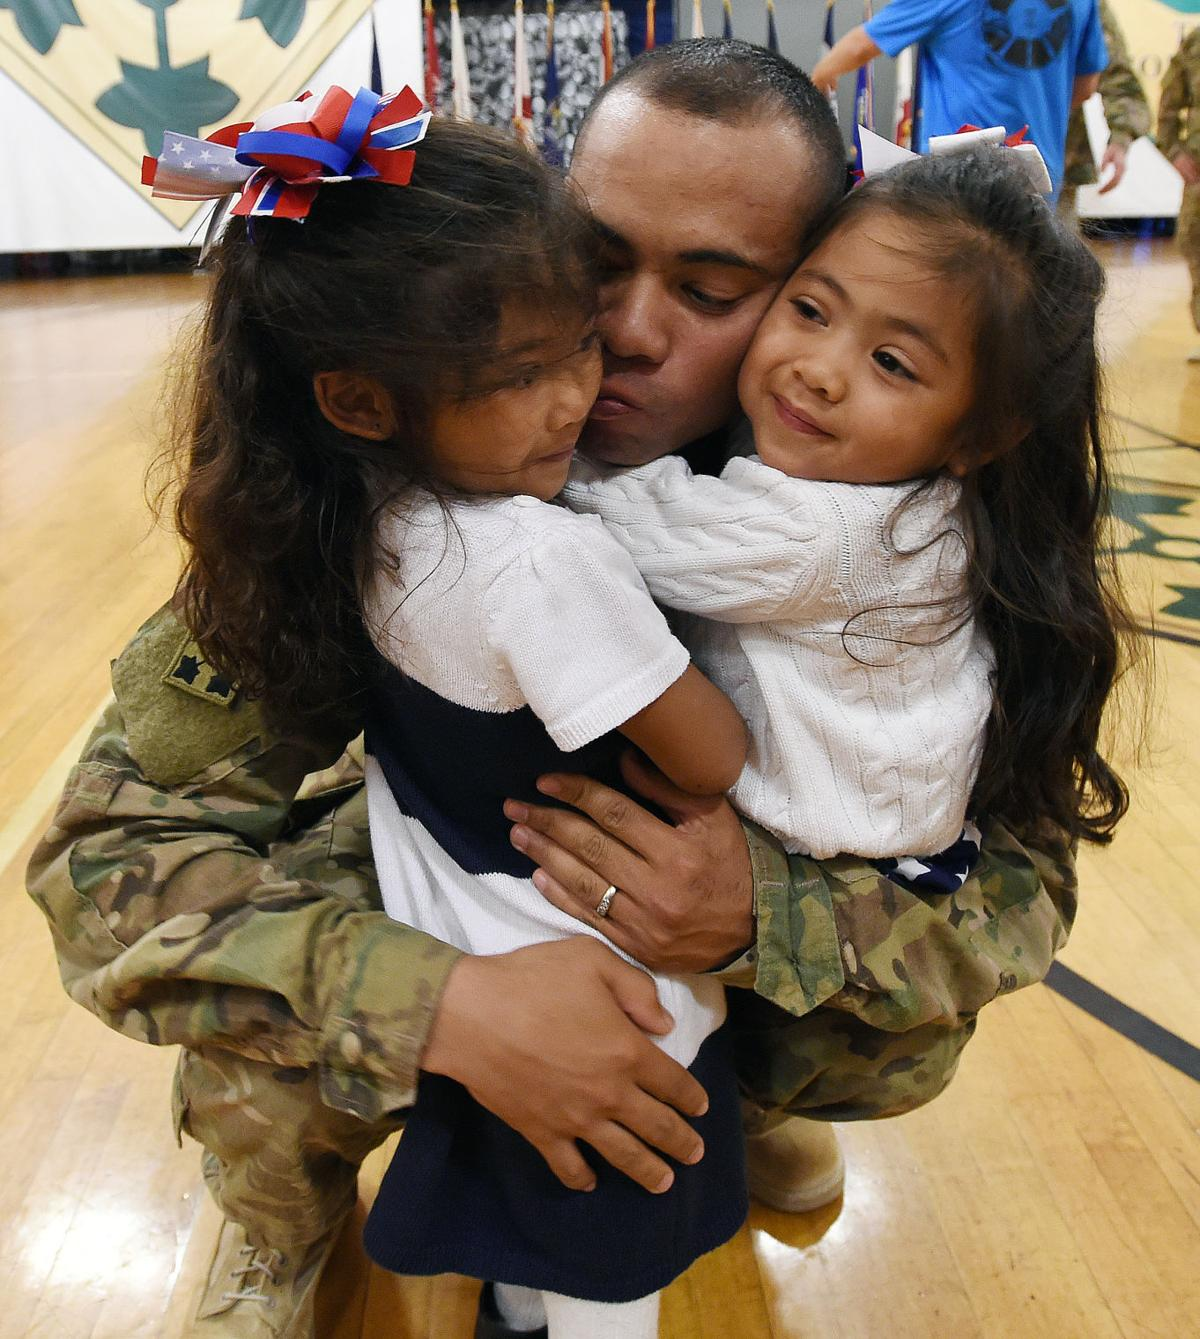 Lt. Daniel Ogelsby gives kisses to his daughters, Layla Ogelsby and Karas Oglesby during homecoming at Ft. Carson. Approximately 55 Ft. Carson soldiers from the 3rd Armored Brigade Combat Team, 4th I.D., returned from Southwest Asia on Tuesday, October 6, 2015. The troops have been gone since February. (Jerilee Bennett/The Gazette)